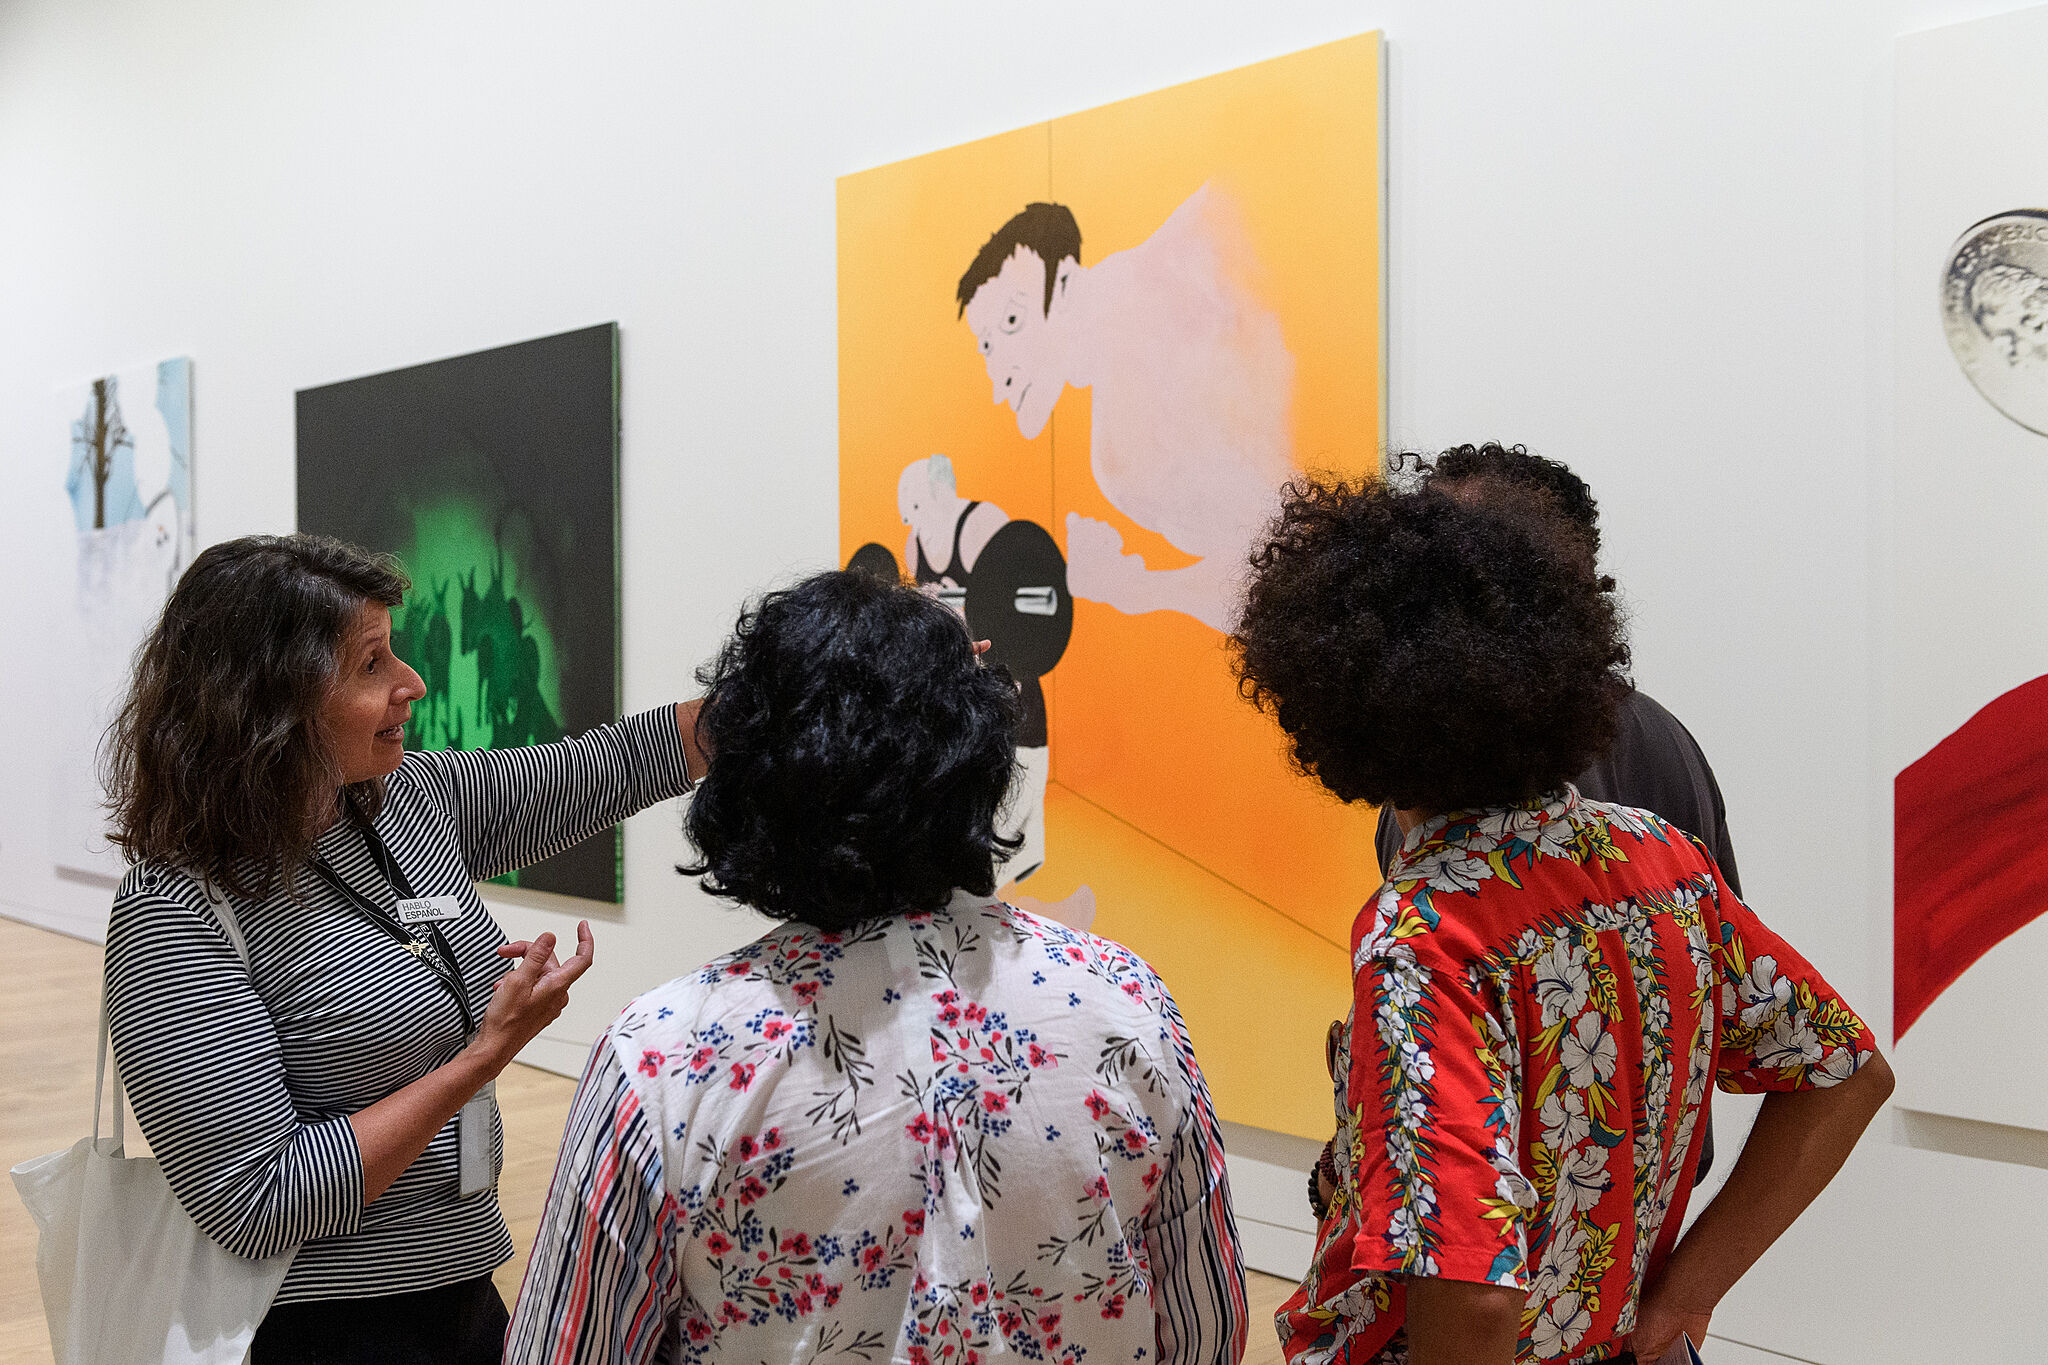 Four individuals stand around a painting speaking and pointing.